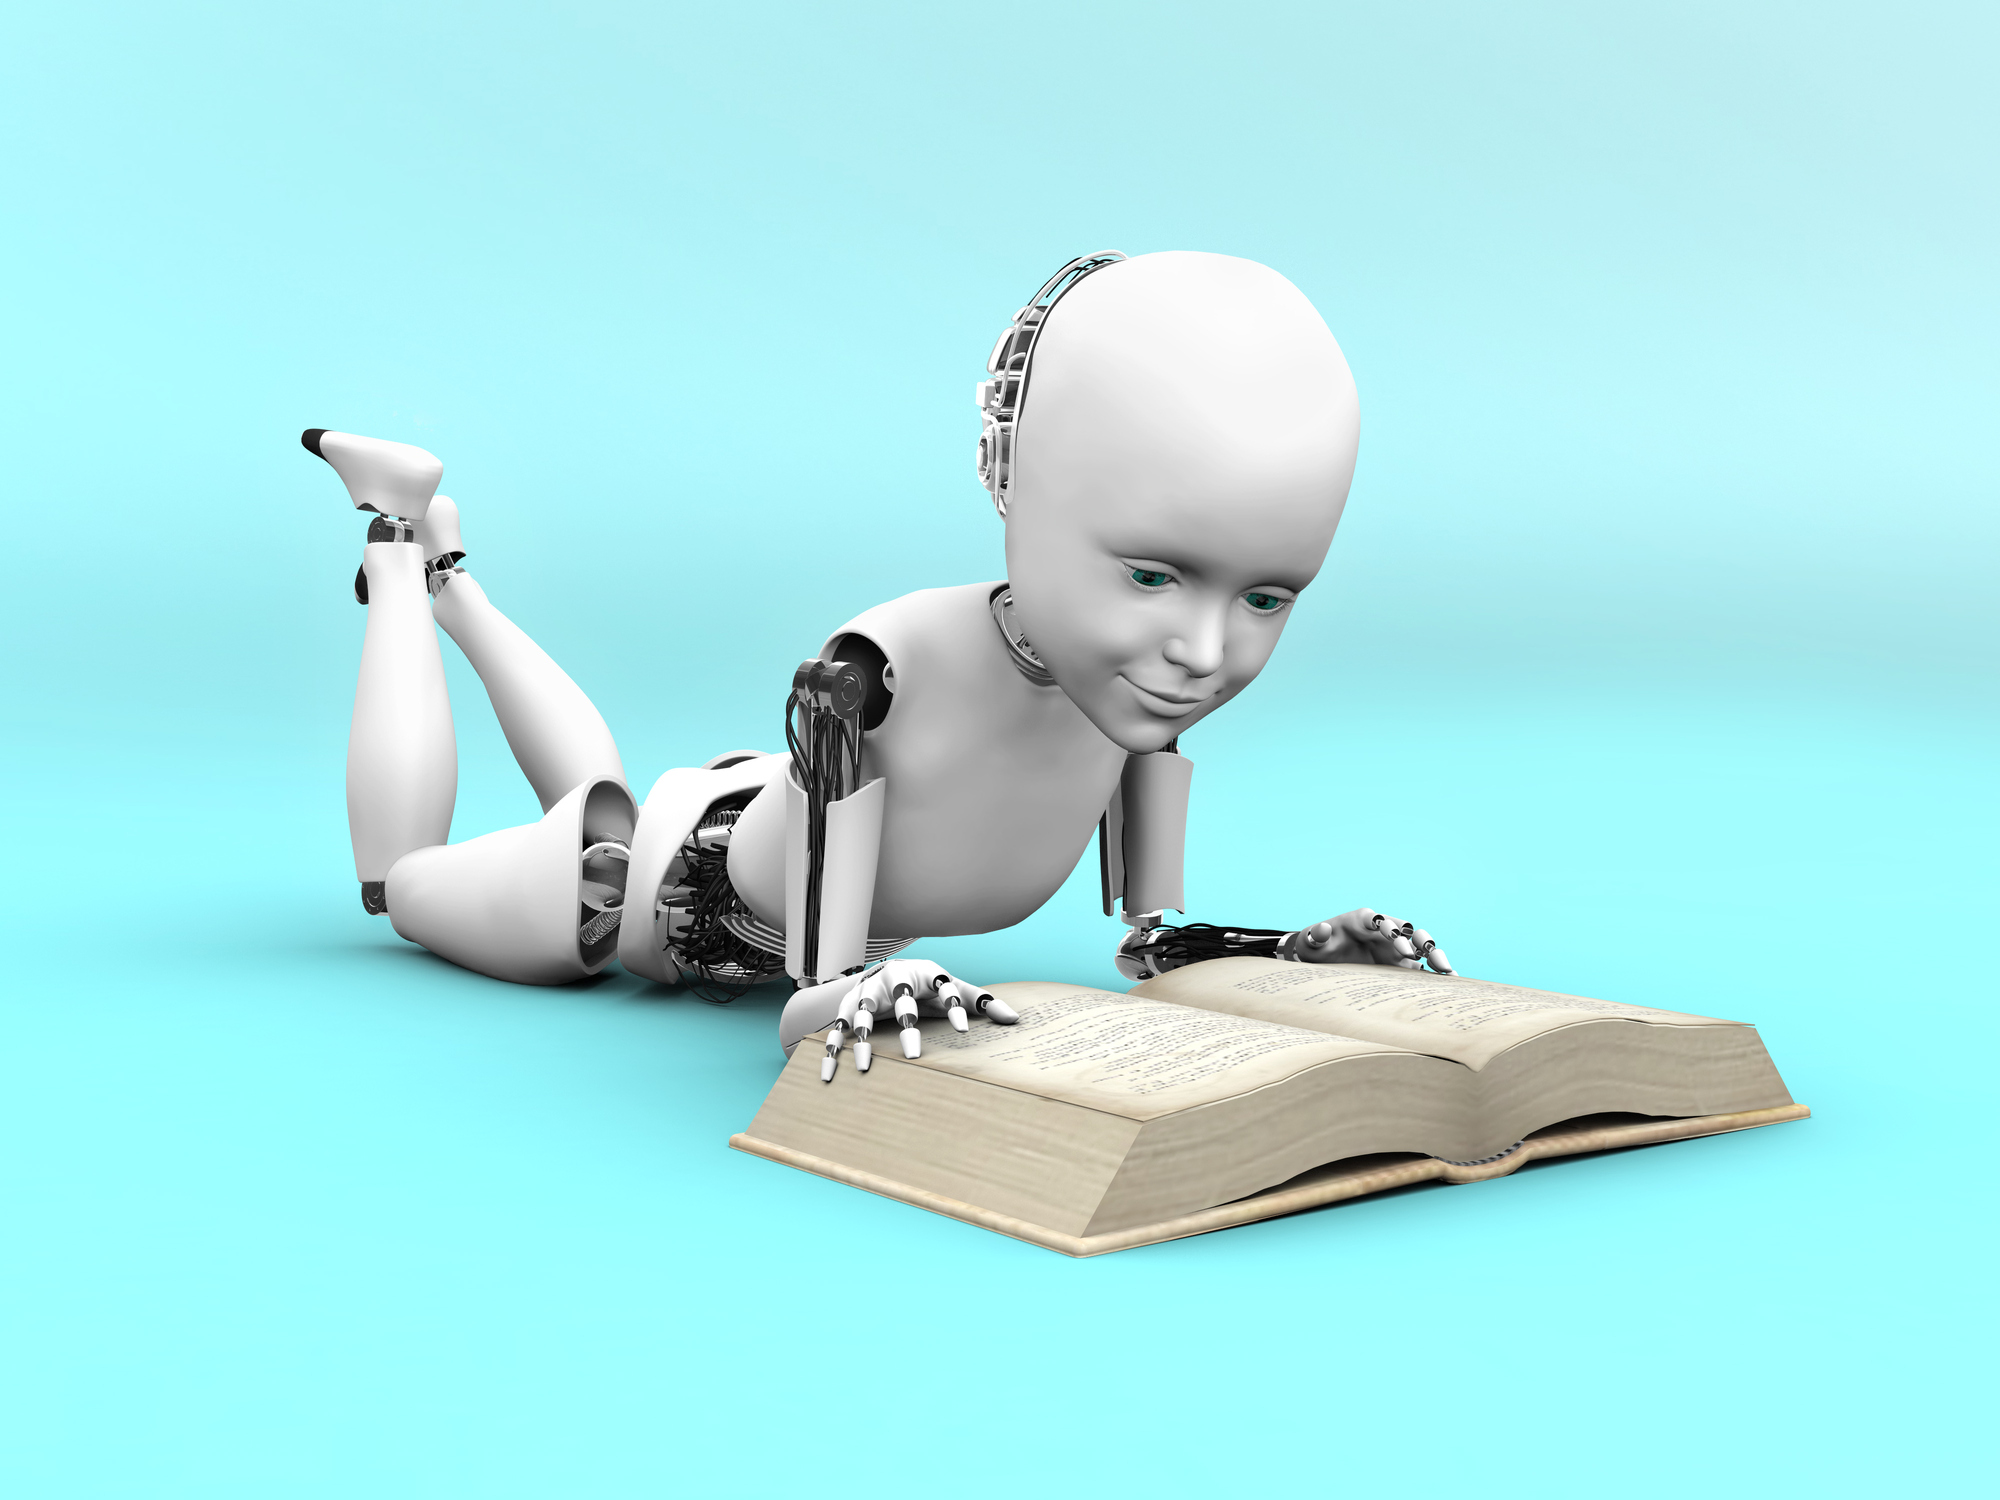 A robot child lying on the floor and reading a book.